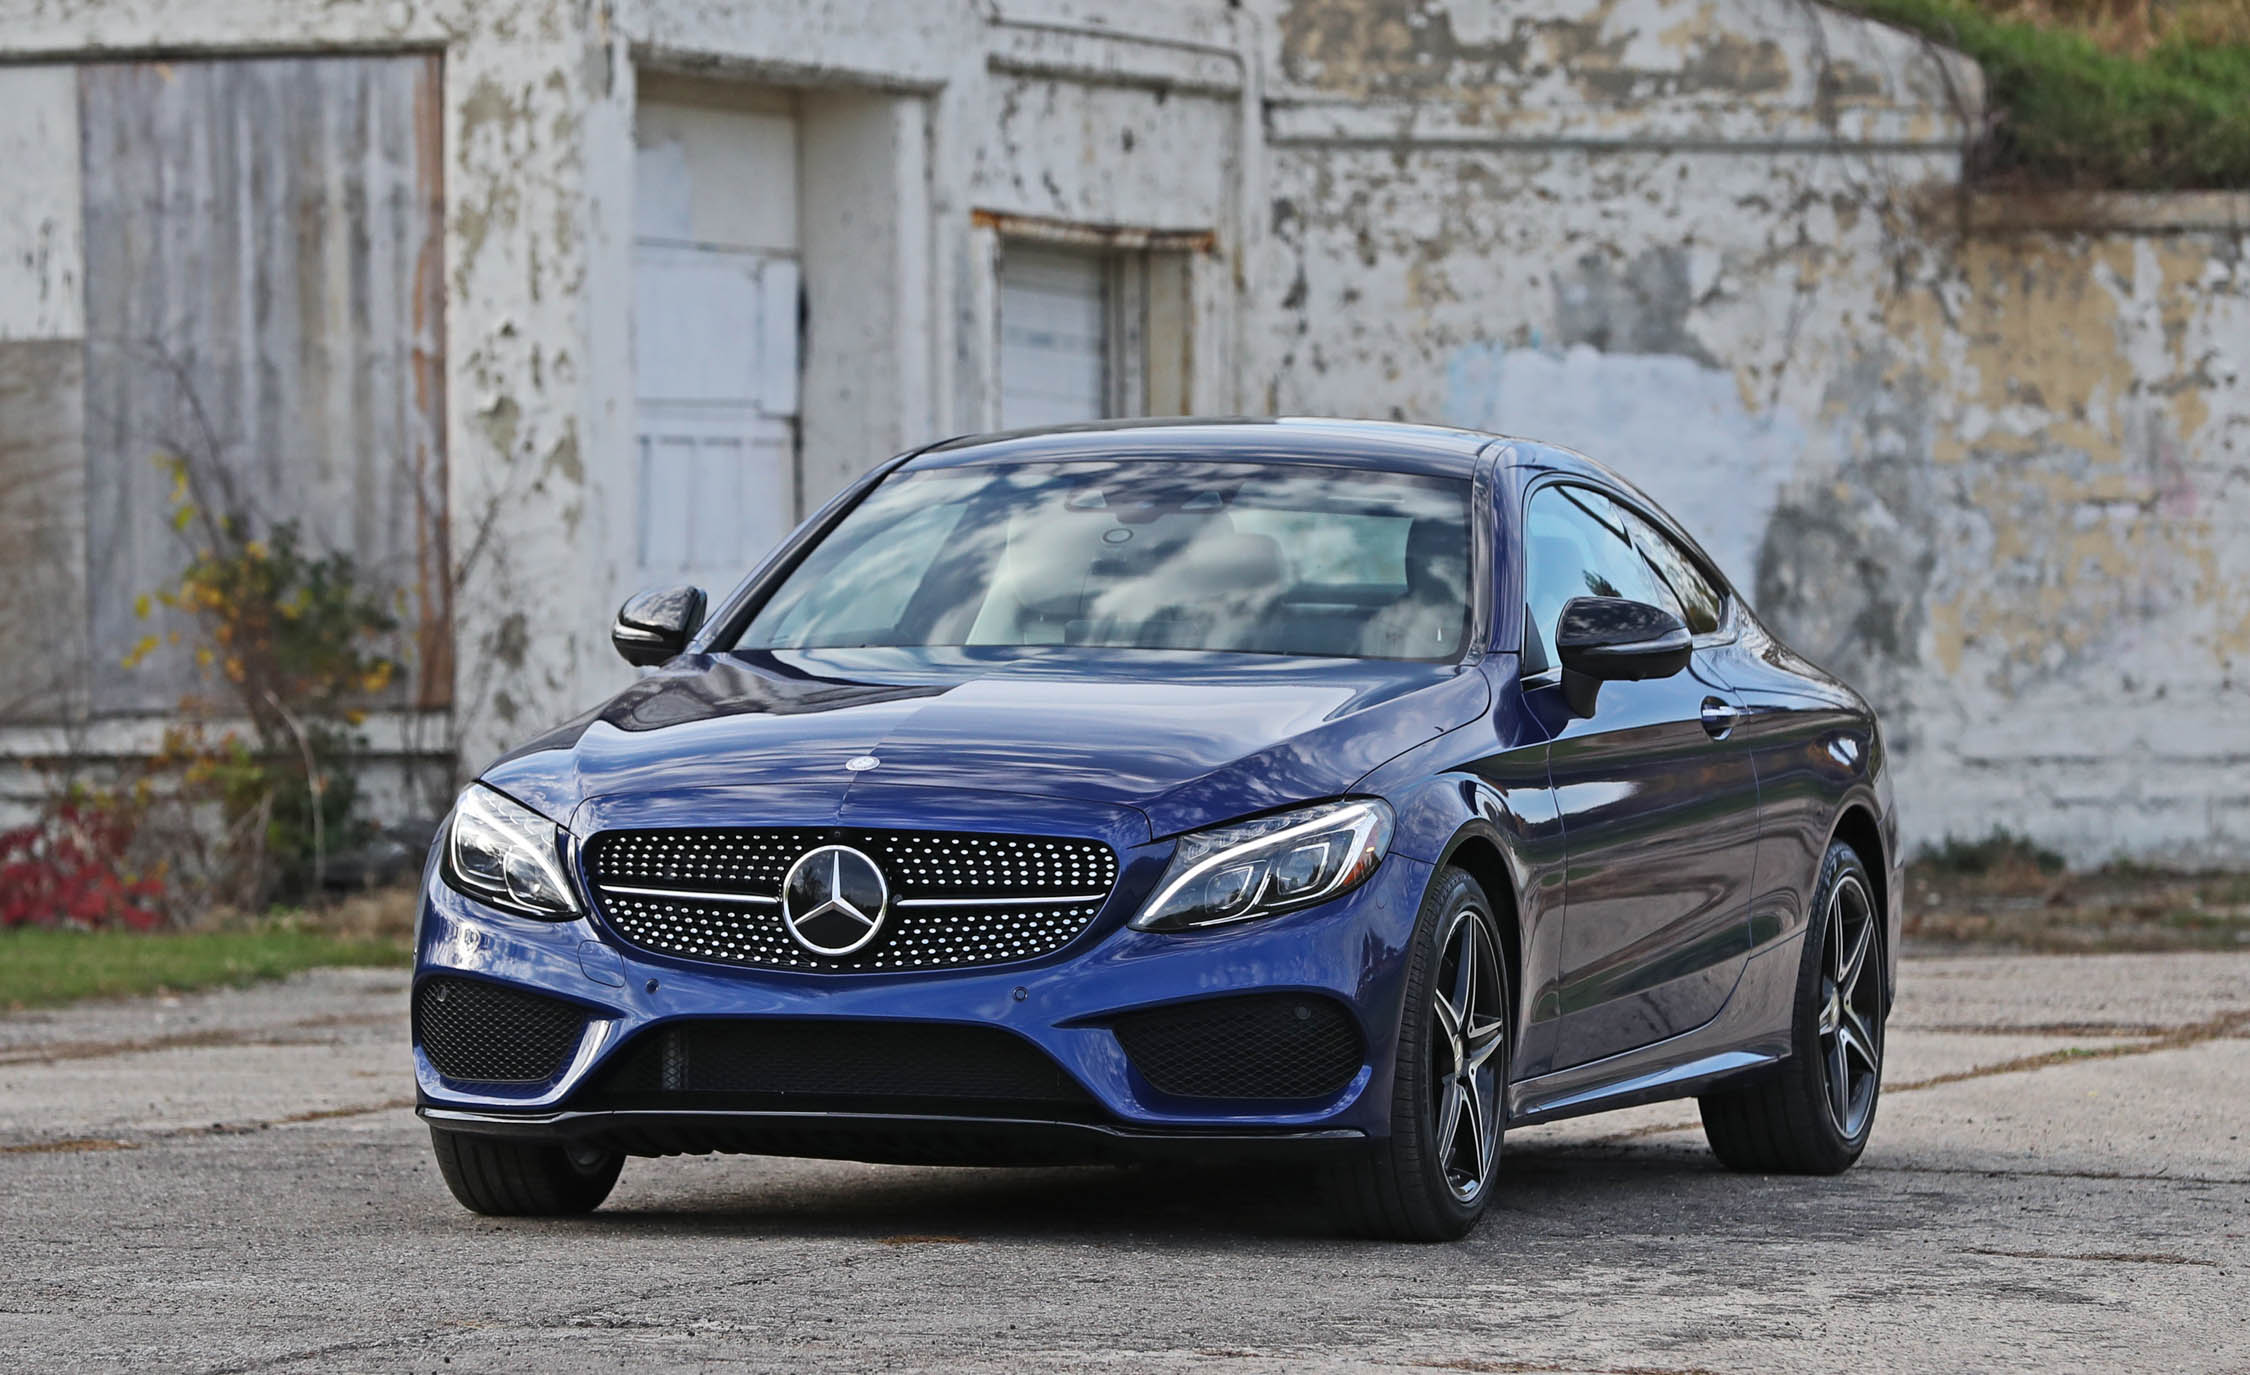 2017 Mercedes Benz C300 4MATIC Coupe Exterior Front (View 38 of 44)